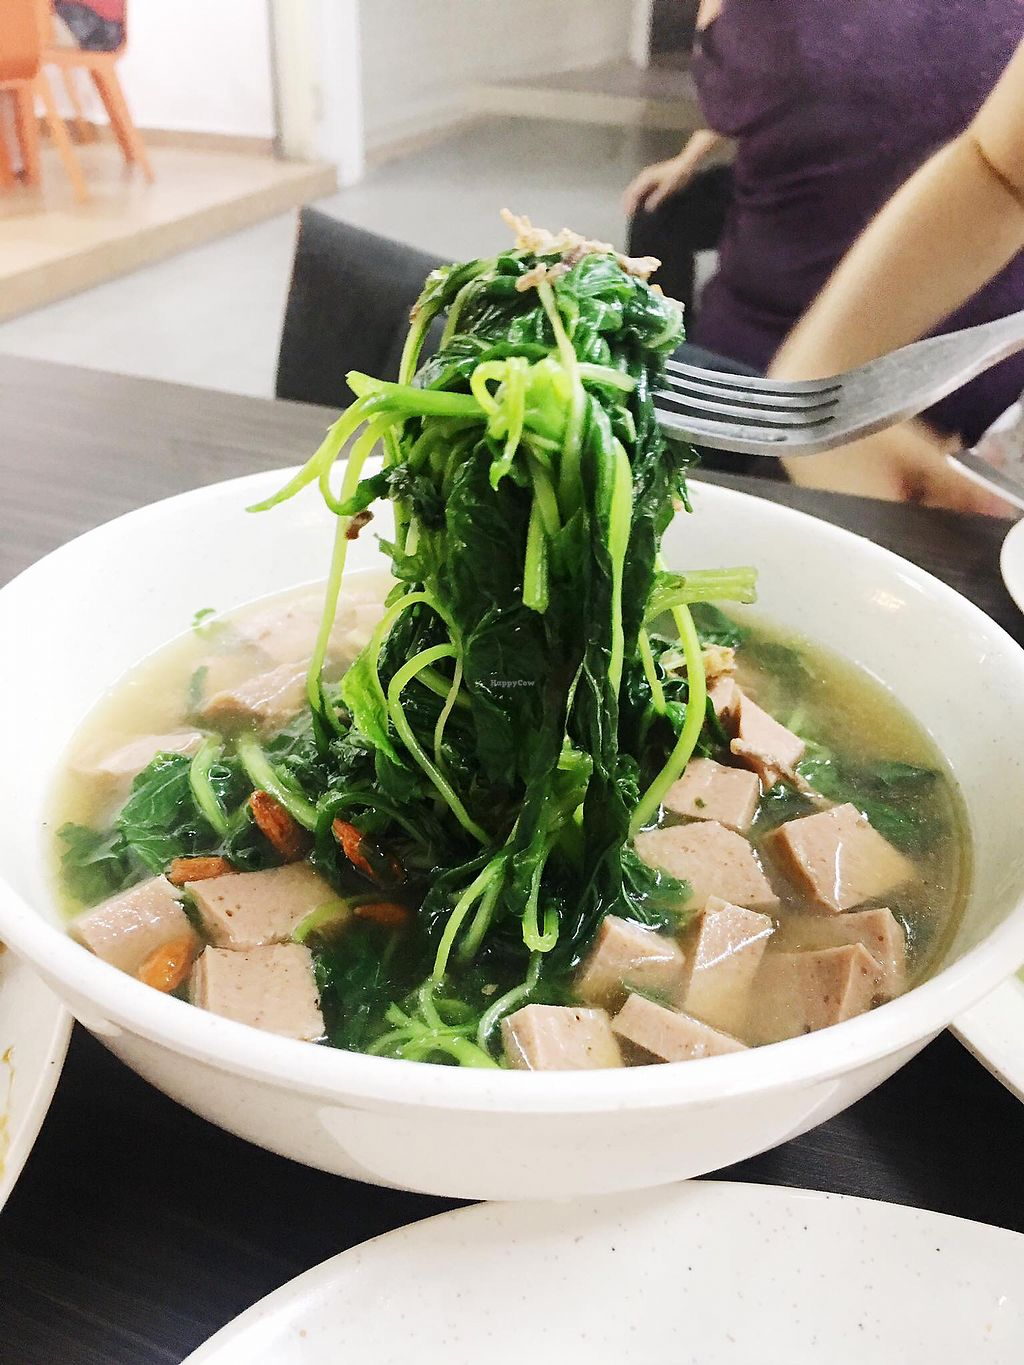 """Photo of Shu Vegetarian - Ang Mo Kio   by <a href=""""/members/profile/CherylQuincy"""">CherylQuincy</a> <br/>Spinach soup <br/> January 17, 2018  - <a href='/contact/abuse/image/95161/347385'>Report</a>"""